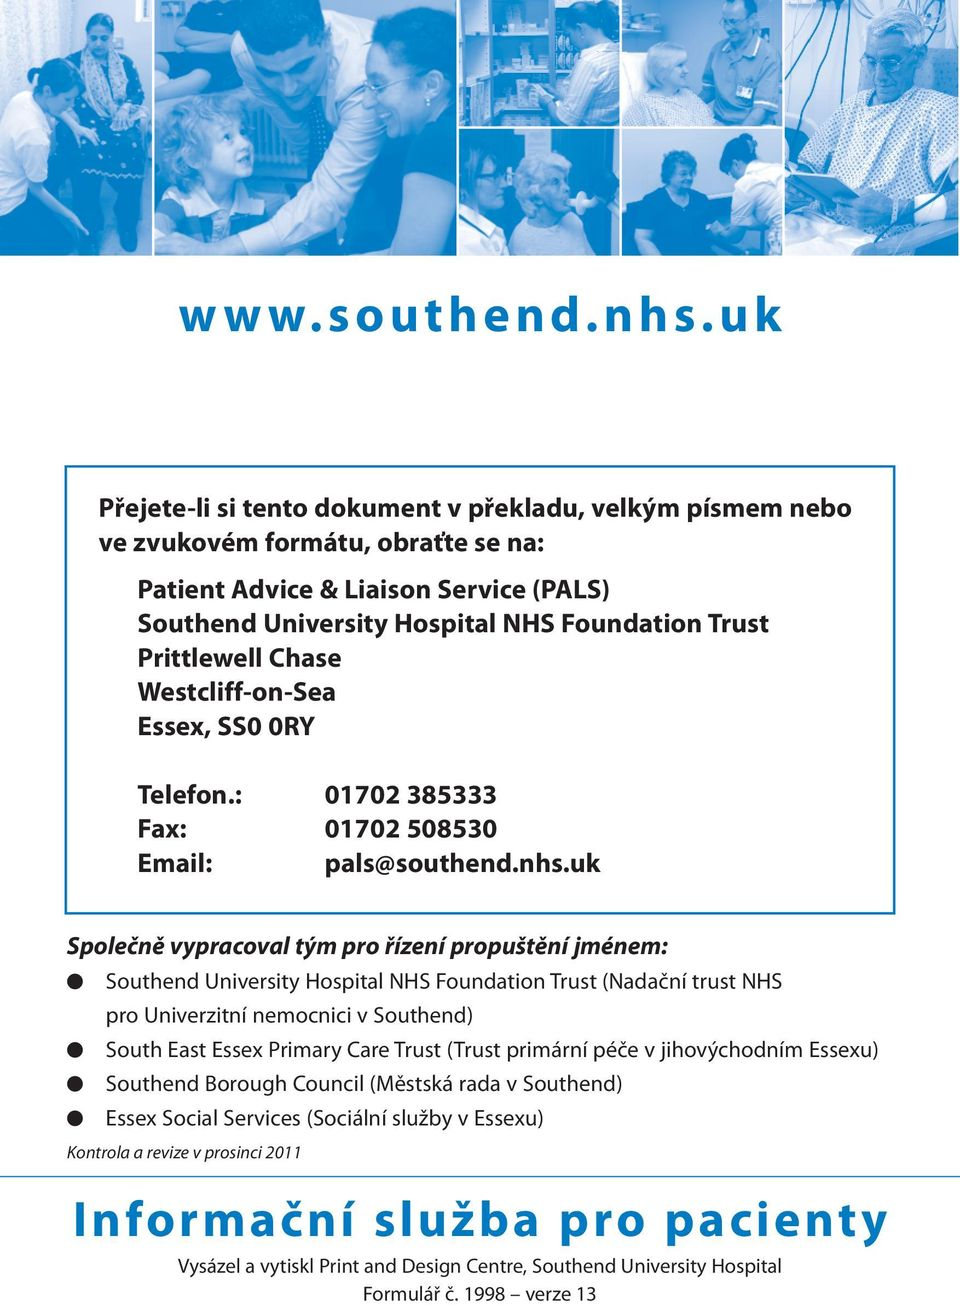 Prittlewell Chase Westcliff-on-Sea Essex, SS0 0RY Telefon.: 01702 385333 Fax: 01702 508530 Email: pals@southend.nhs.